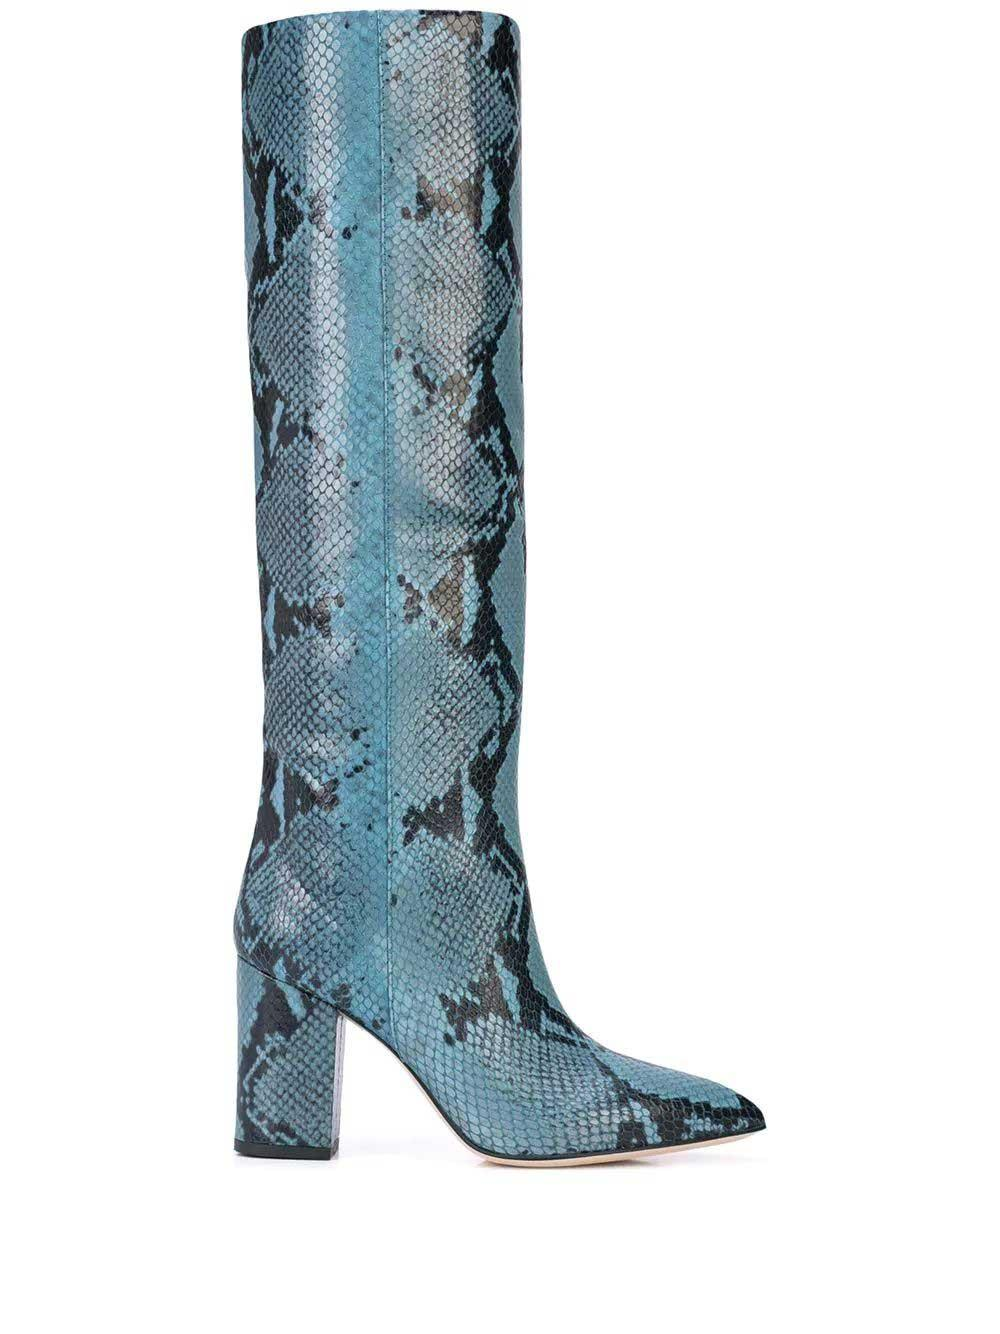 Python Print 80mm Leather Tall Boot Item # PX166P